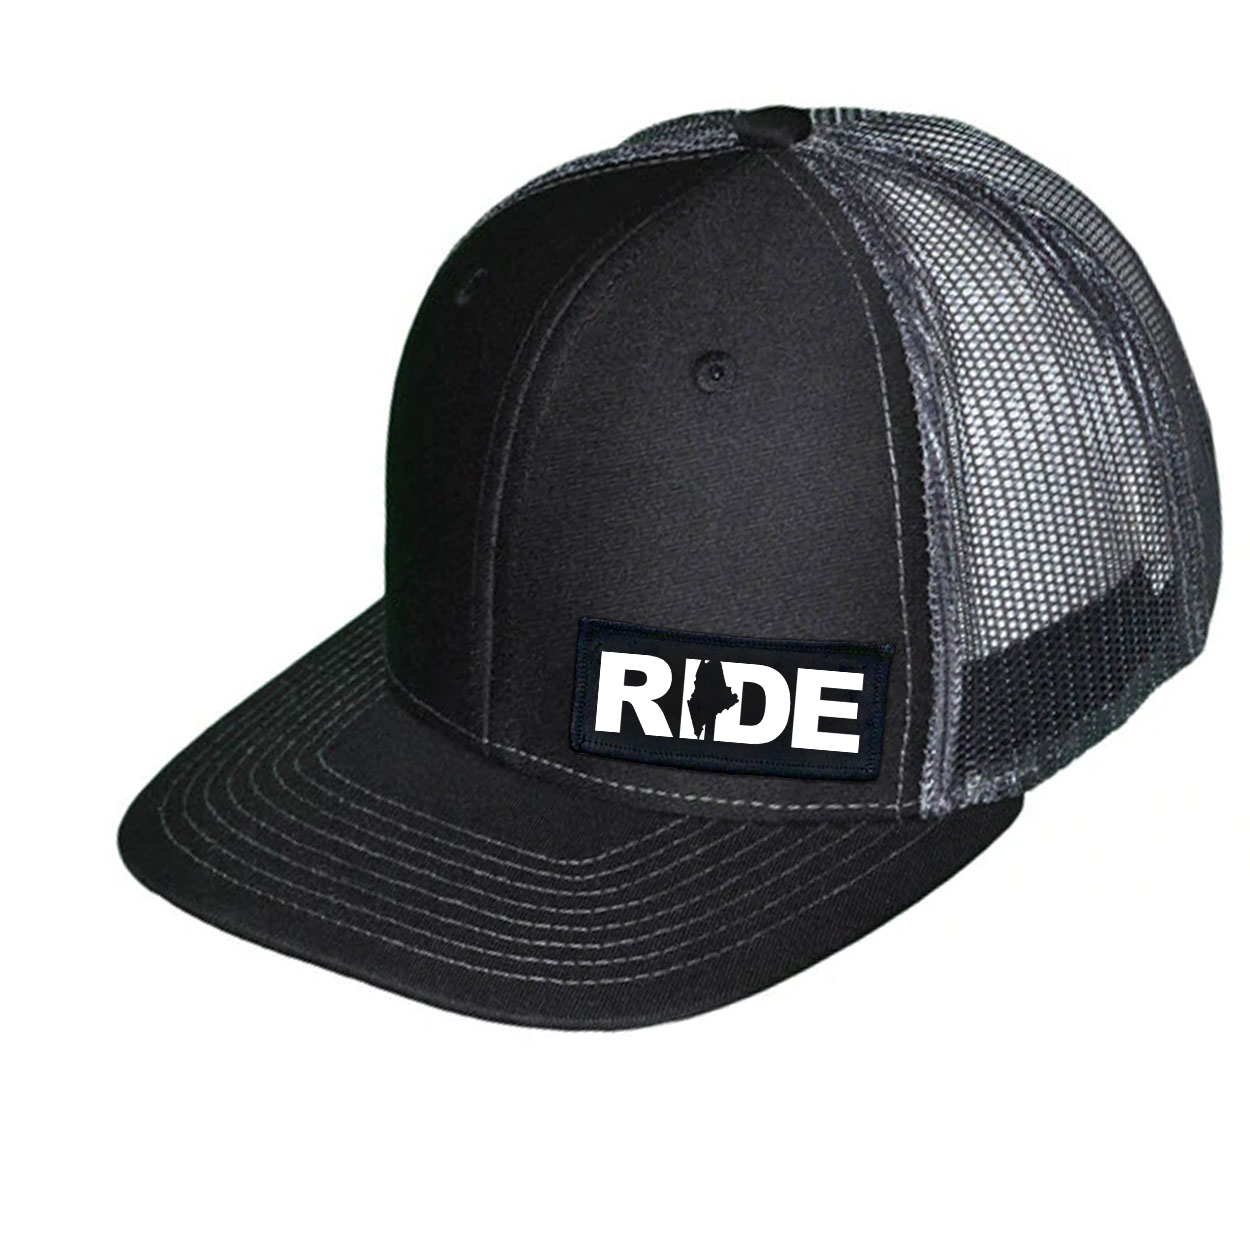 Ride Maine Night Out Woven Patch Snapback Trucker Hat Black/Dark Gray (White Logo)